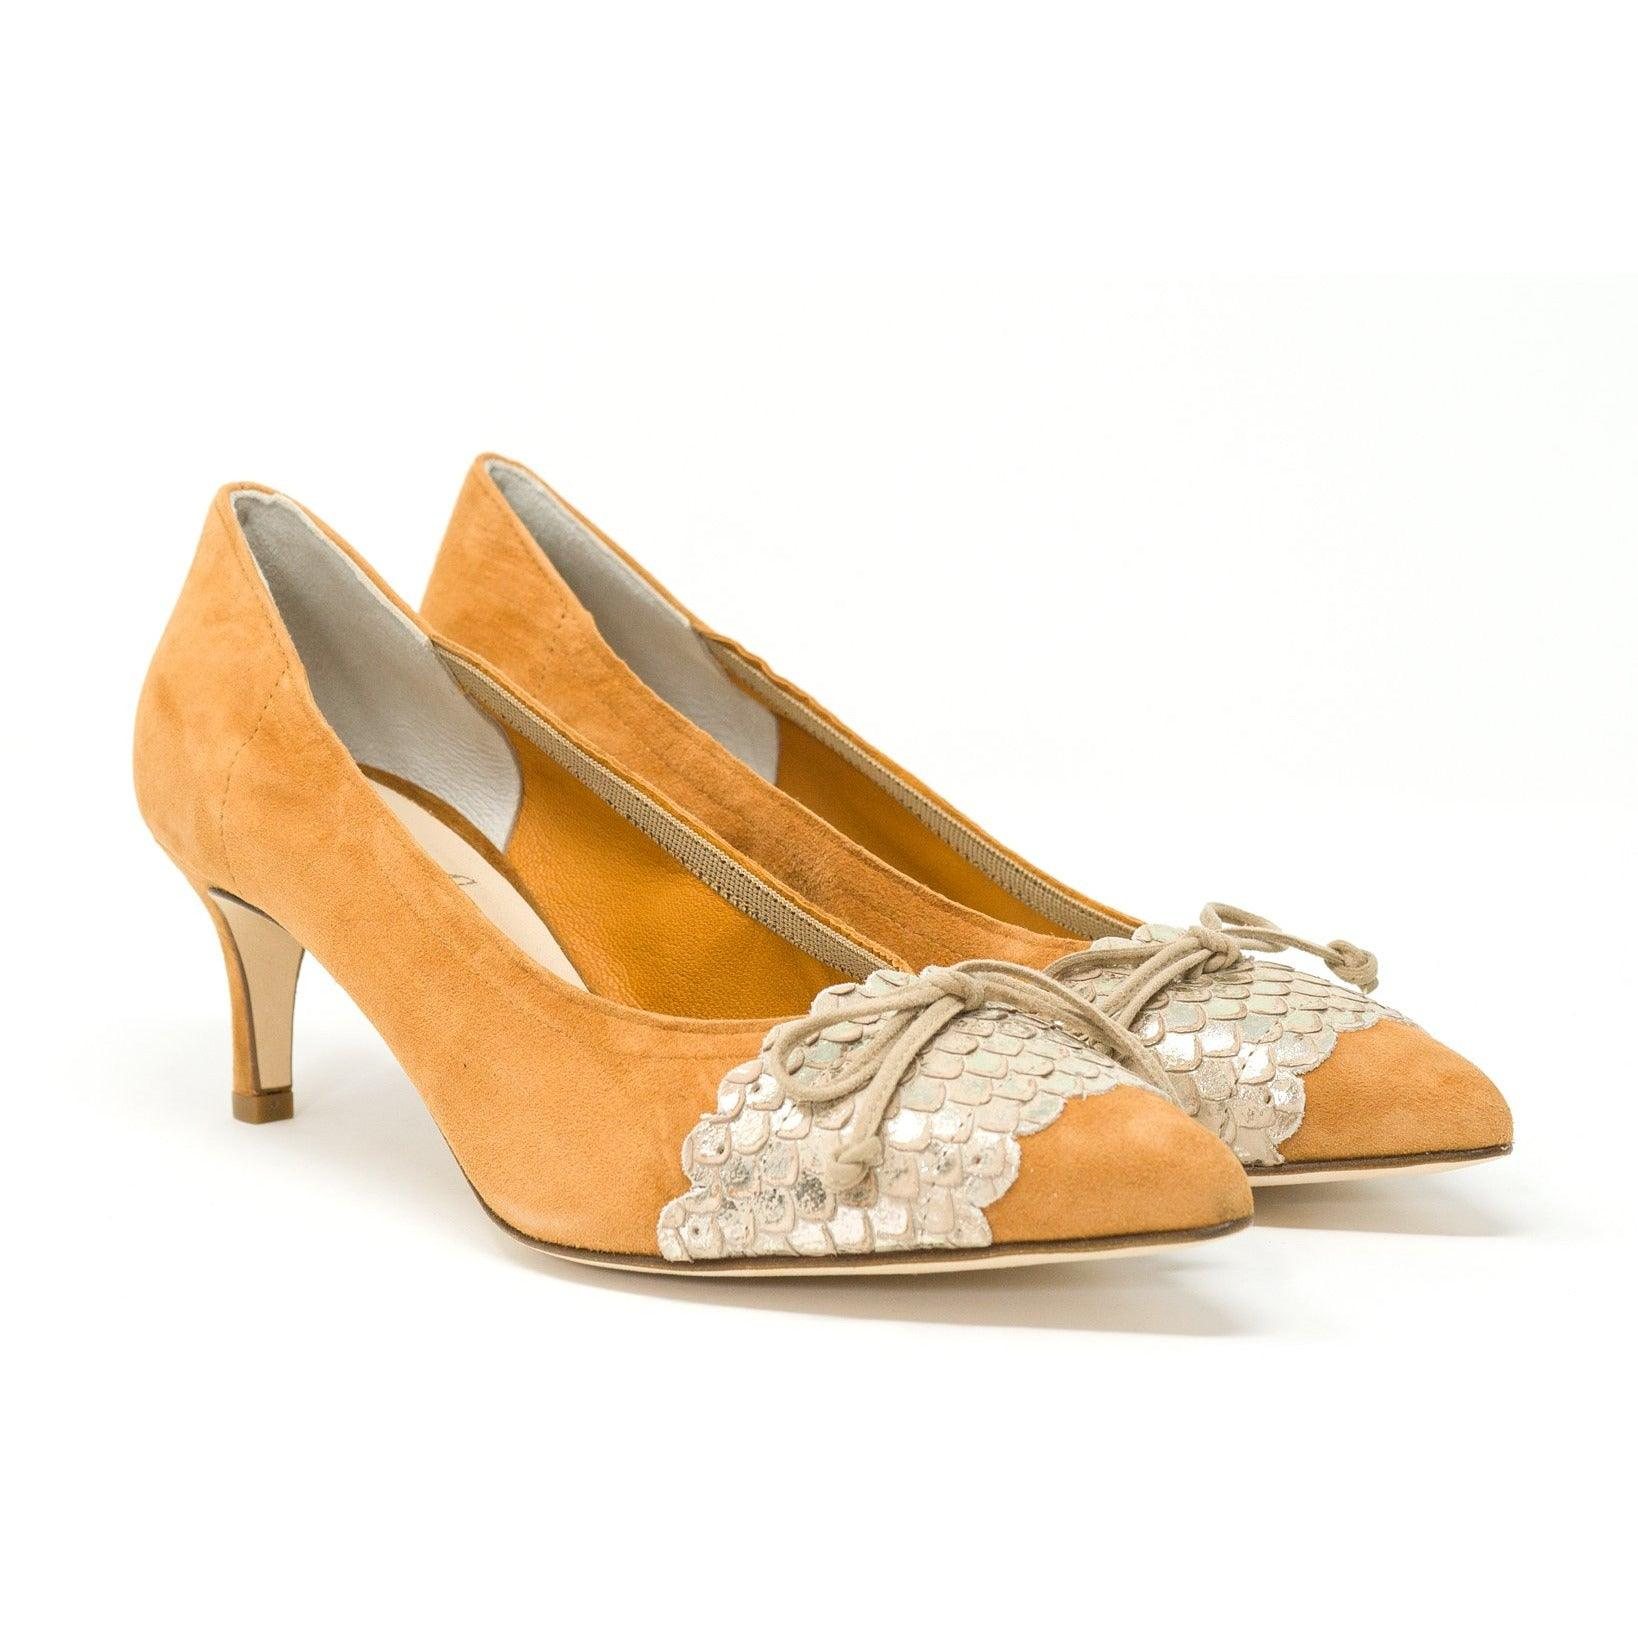 Women's Lamb Skin Leather Pumps in Cuoio